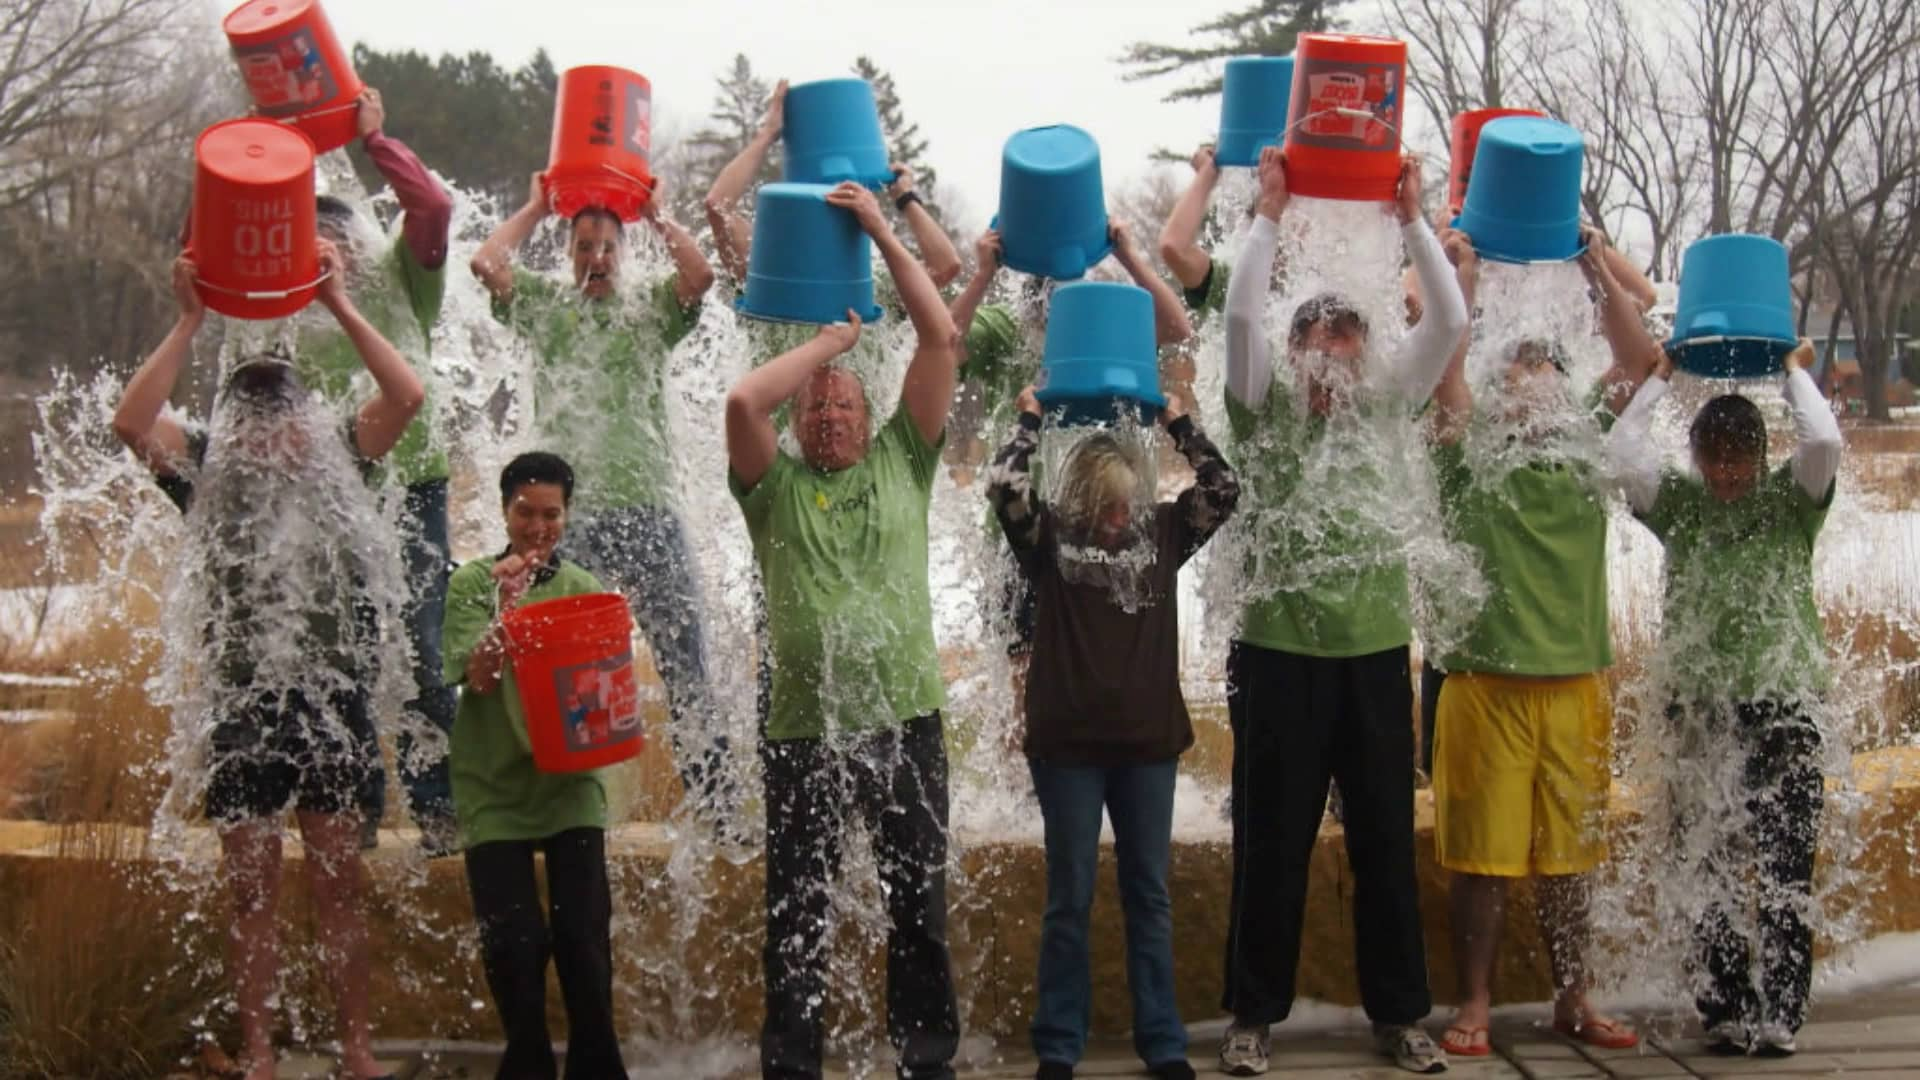 Ice Bucket challenge marketing success